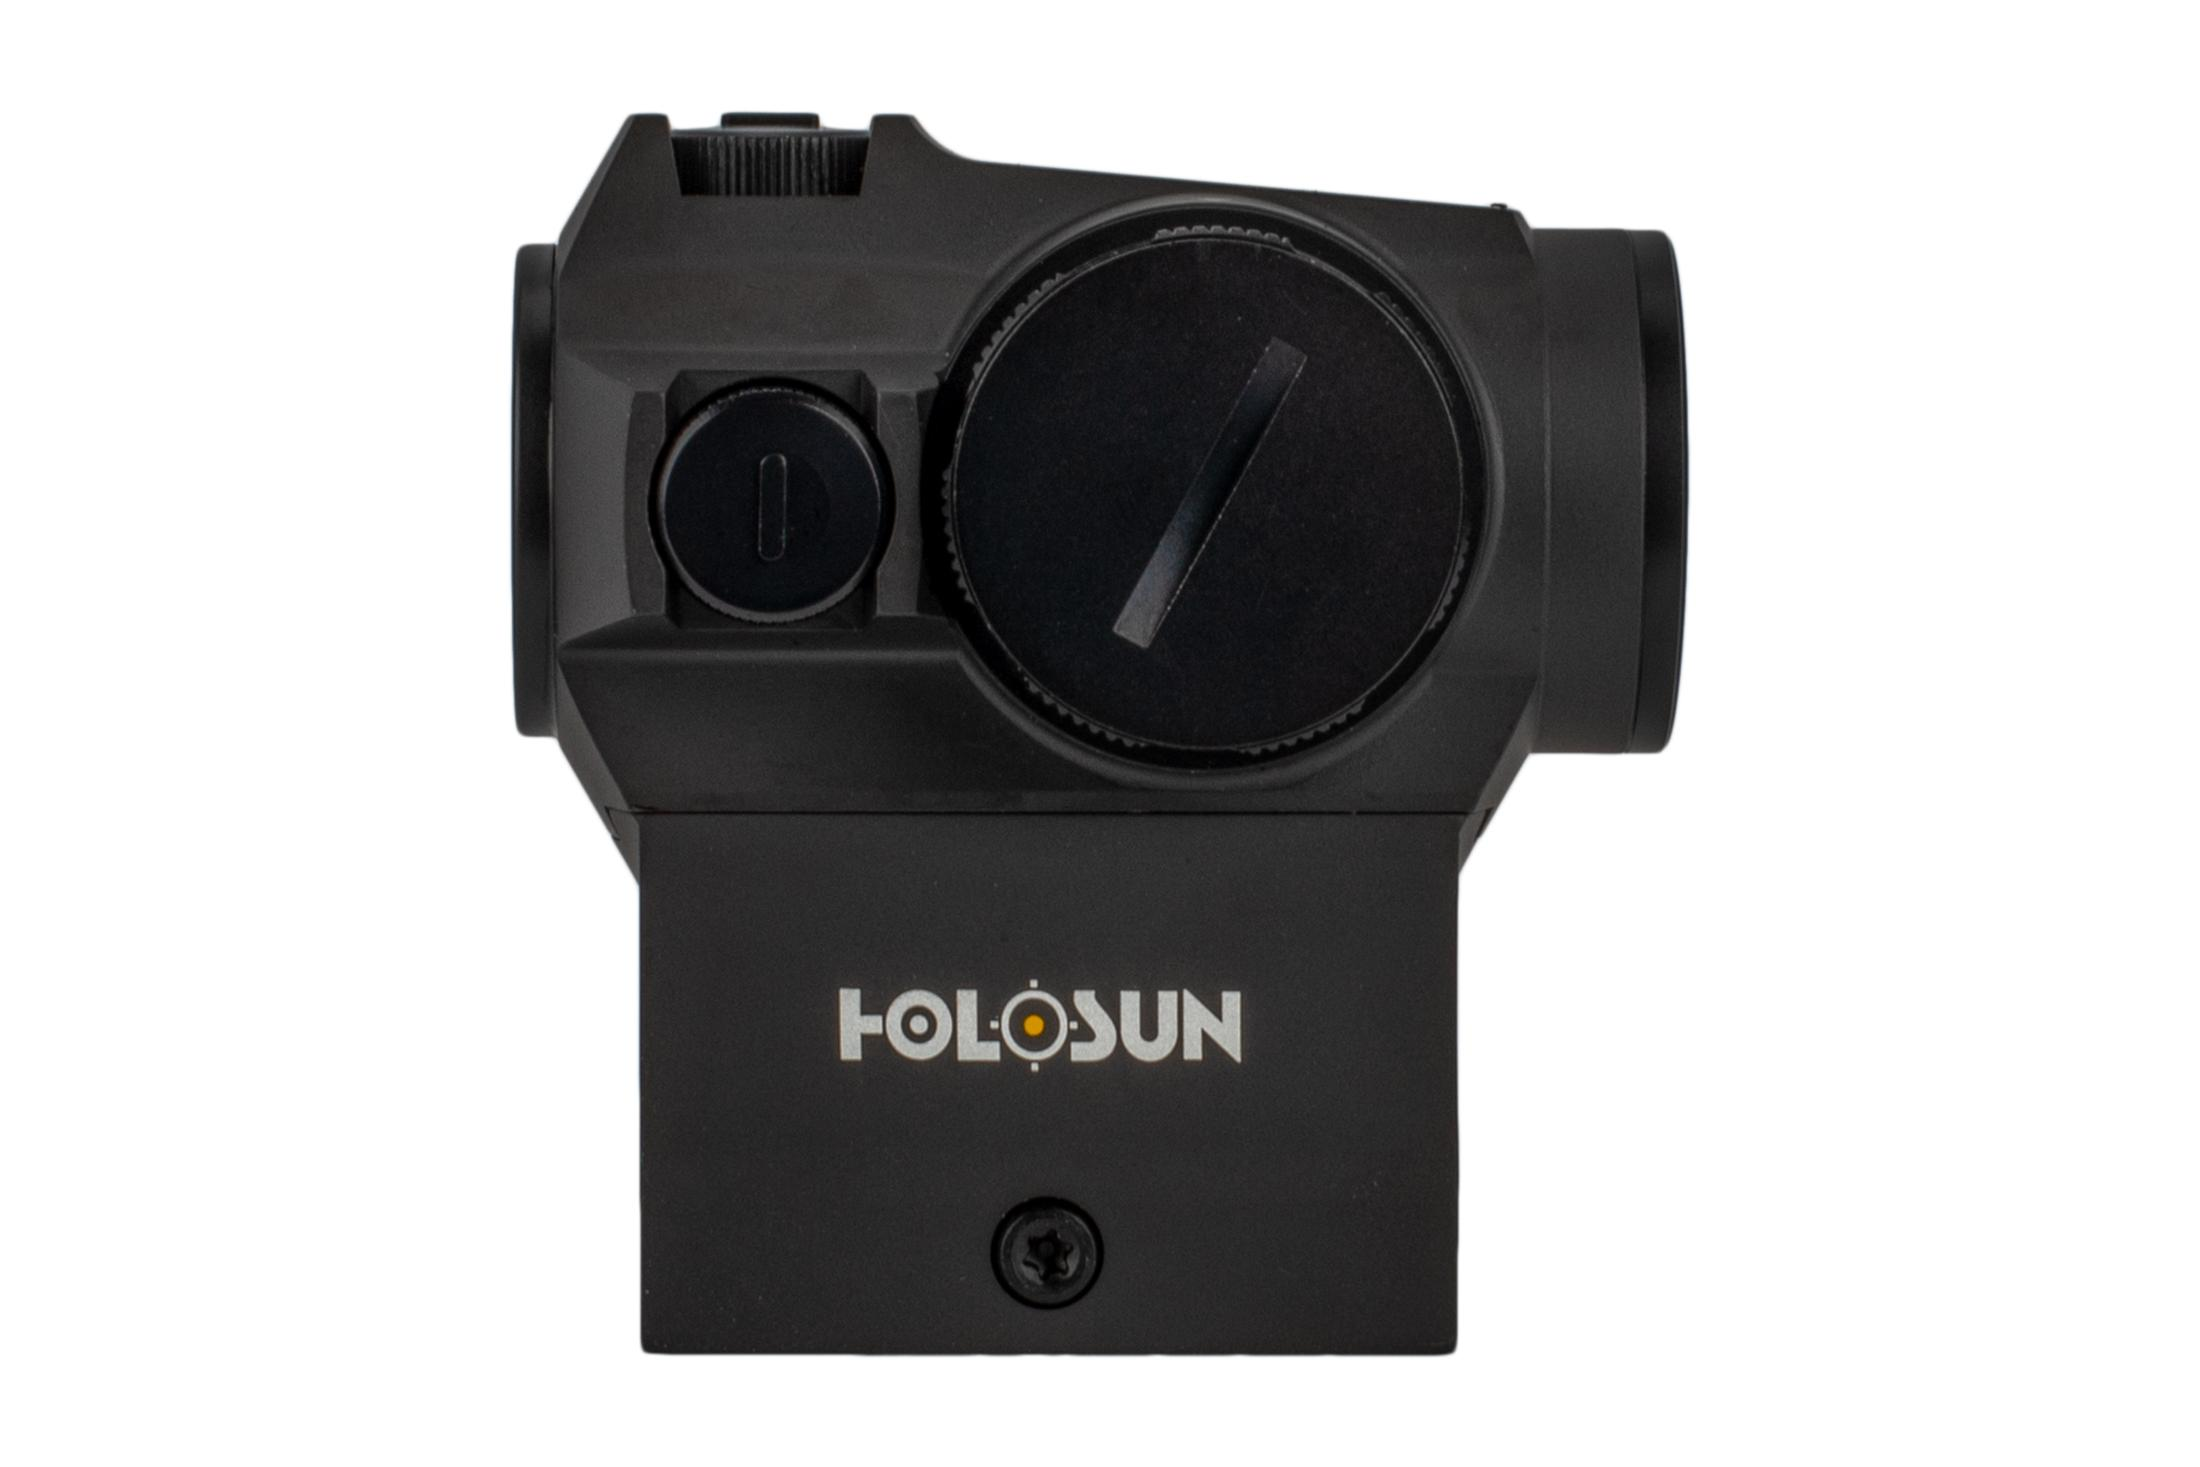 The Holusun HE403R-GD Gold Dot Sight features a rotary knob brightness adjustment